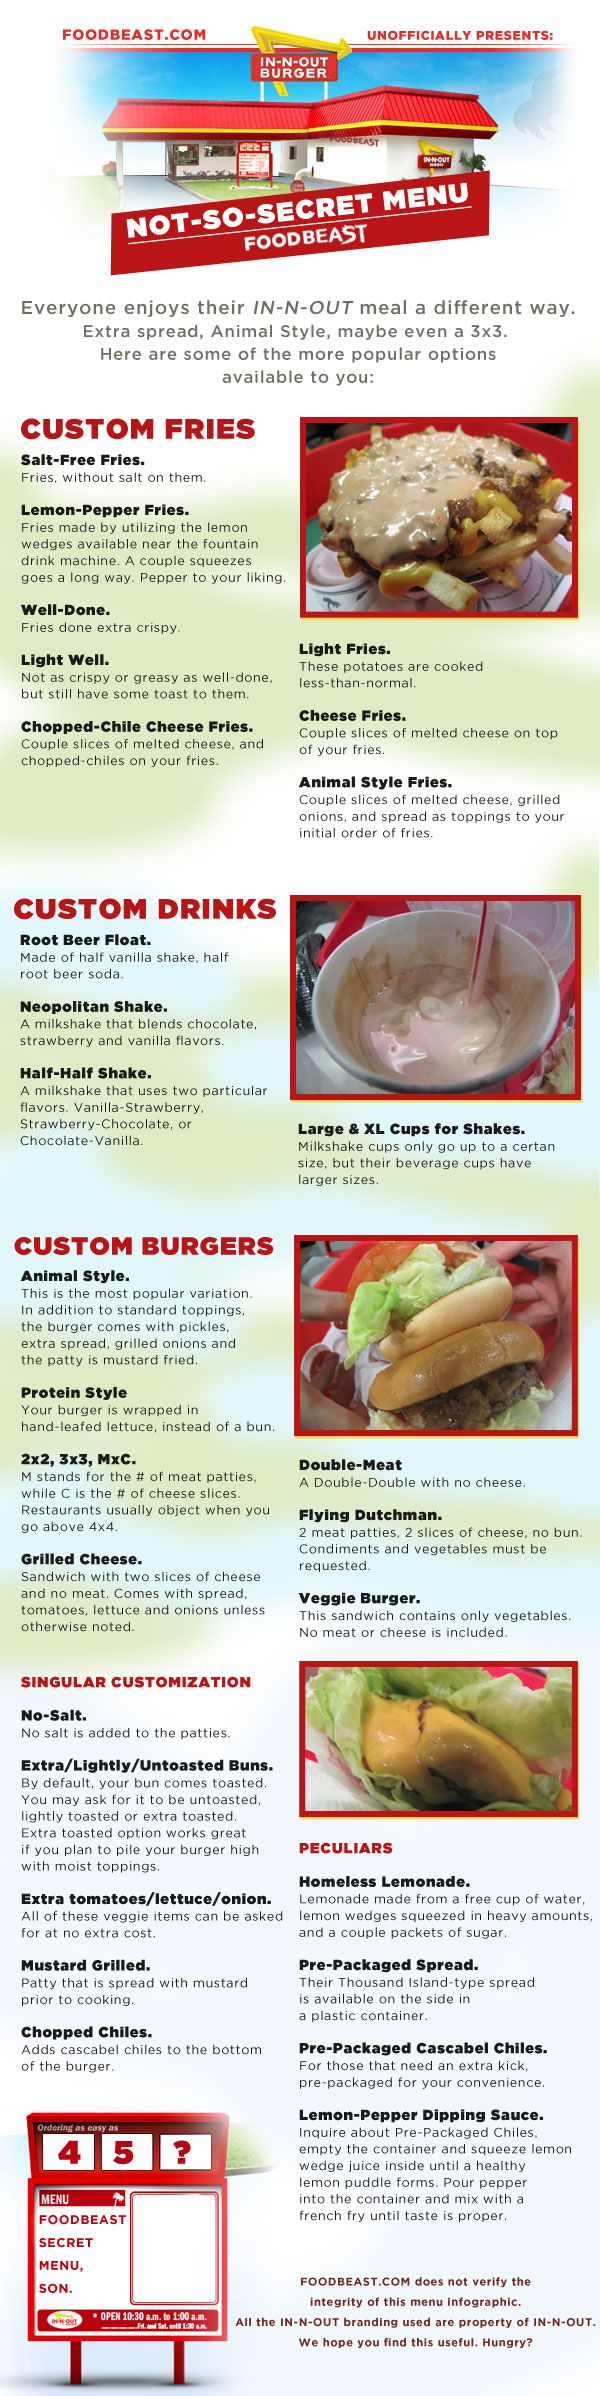 So good to know when I get to an In-N-Out Burger again! foodbeast-innout-not-so-secret-infographic.jpg 600×2,396 pixels